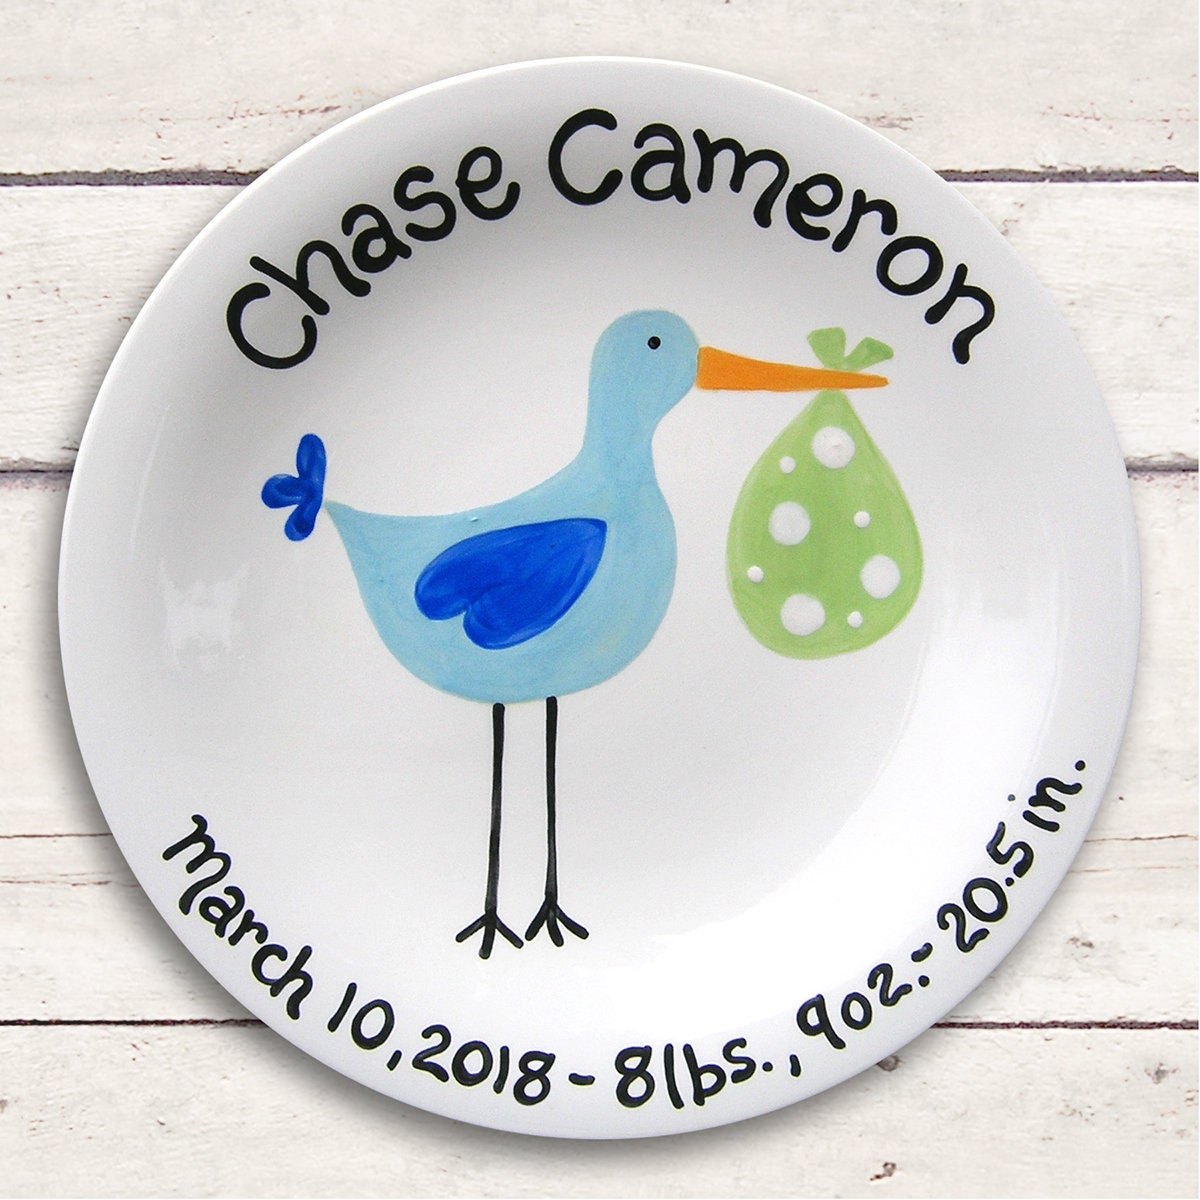 Baby Stork Ceramic Plate - Hand Painted Baby Gift - Stork Baby Shower - Sassy Stork Baby Boy - Personalized Gift for Newborn - New Baby  sc 1 st  Little Worm And Company : personalized ceramic plate - pezcame.com